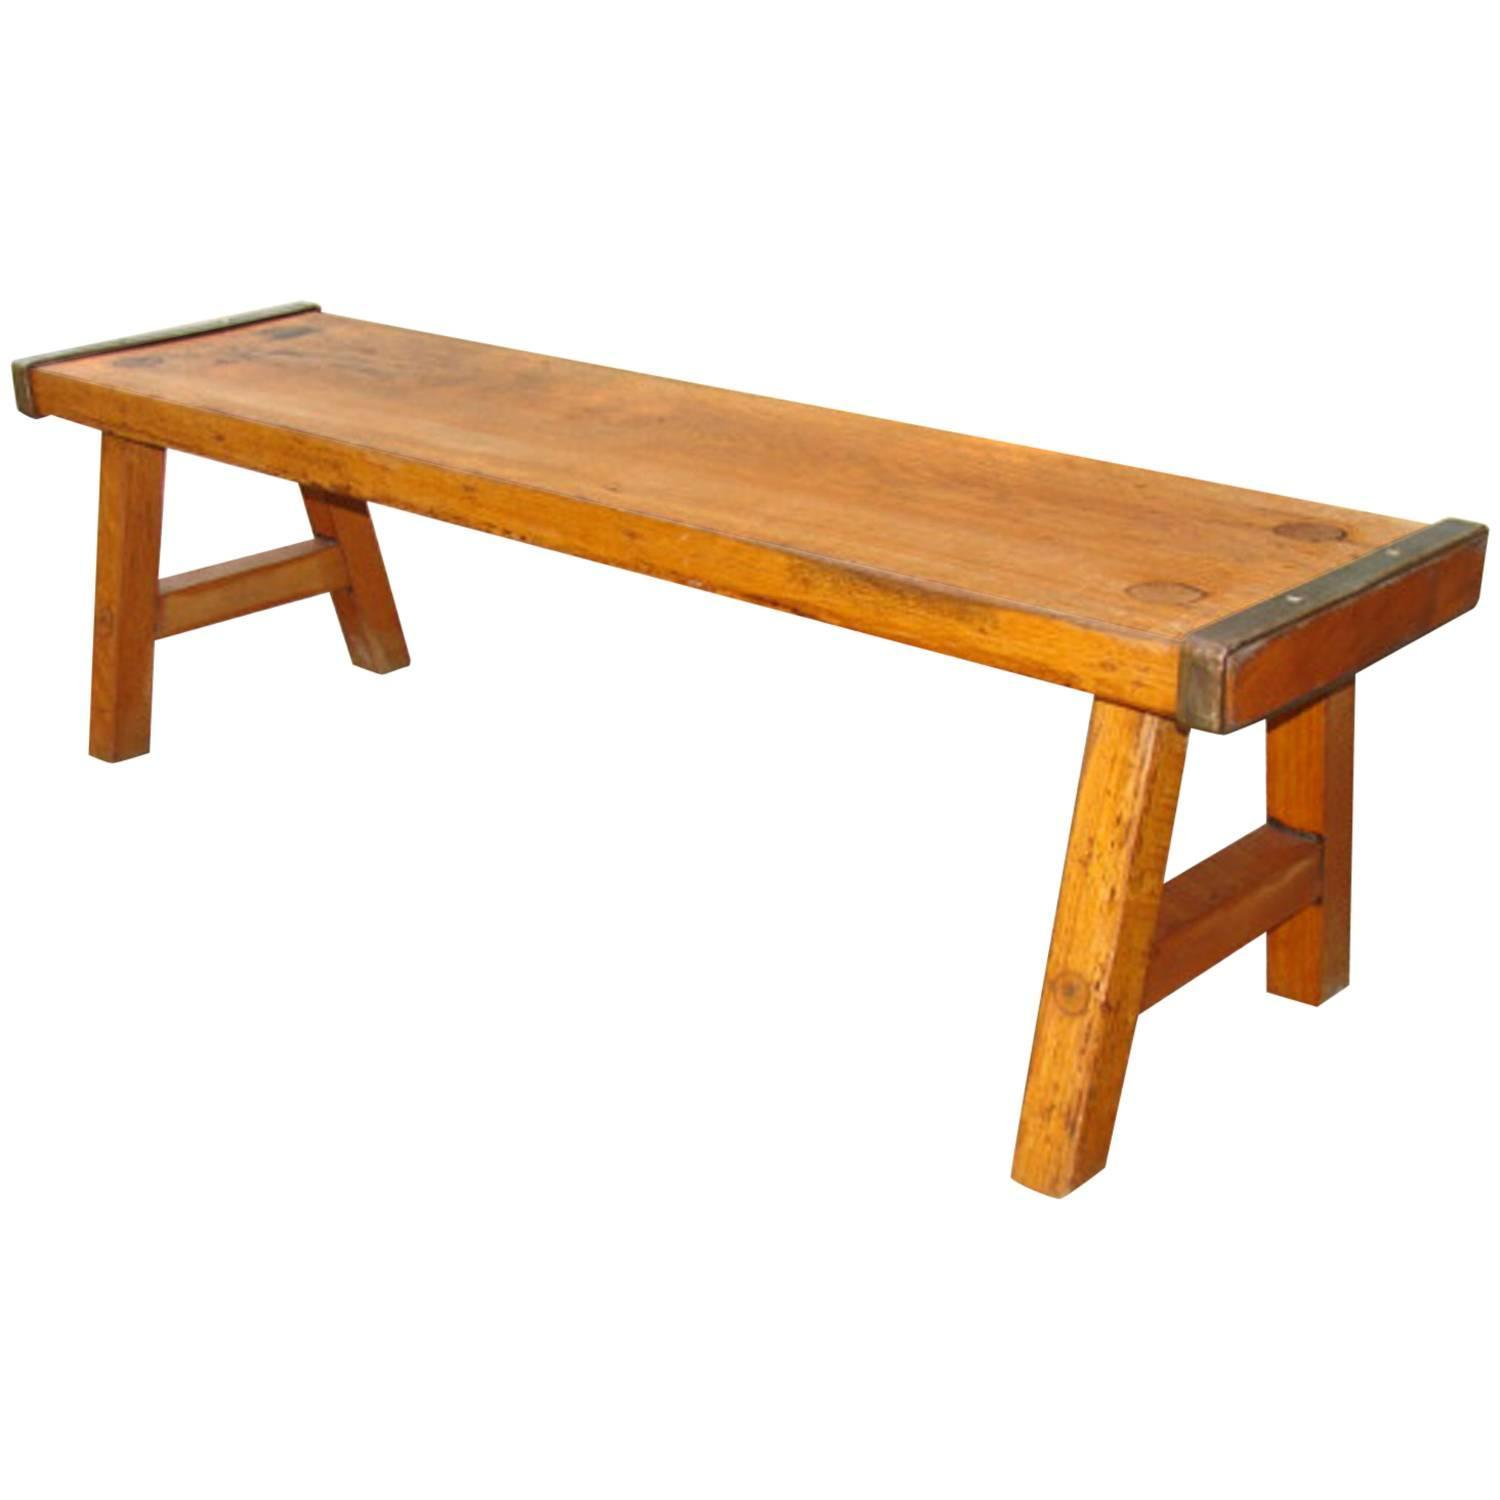 Antique Oak Low Table Bench For Sale At 1stdibs